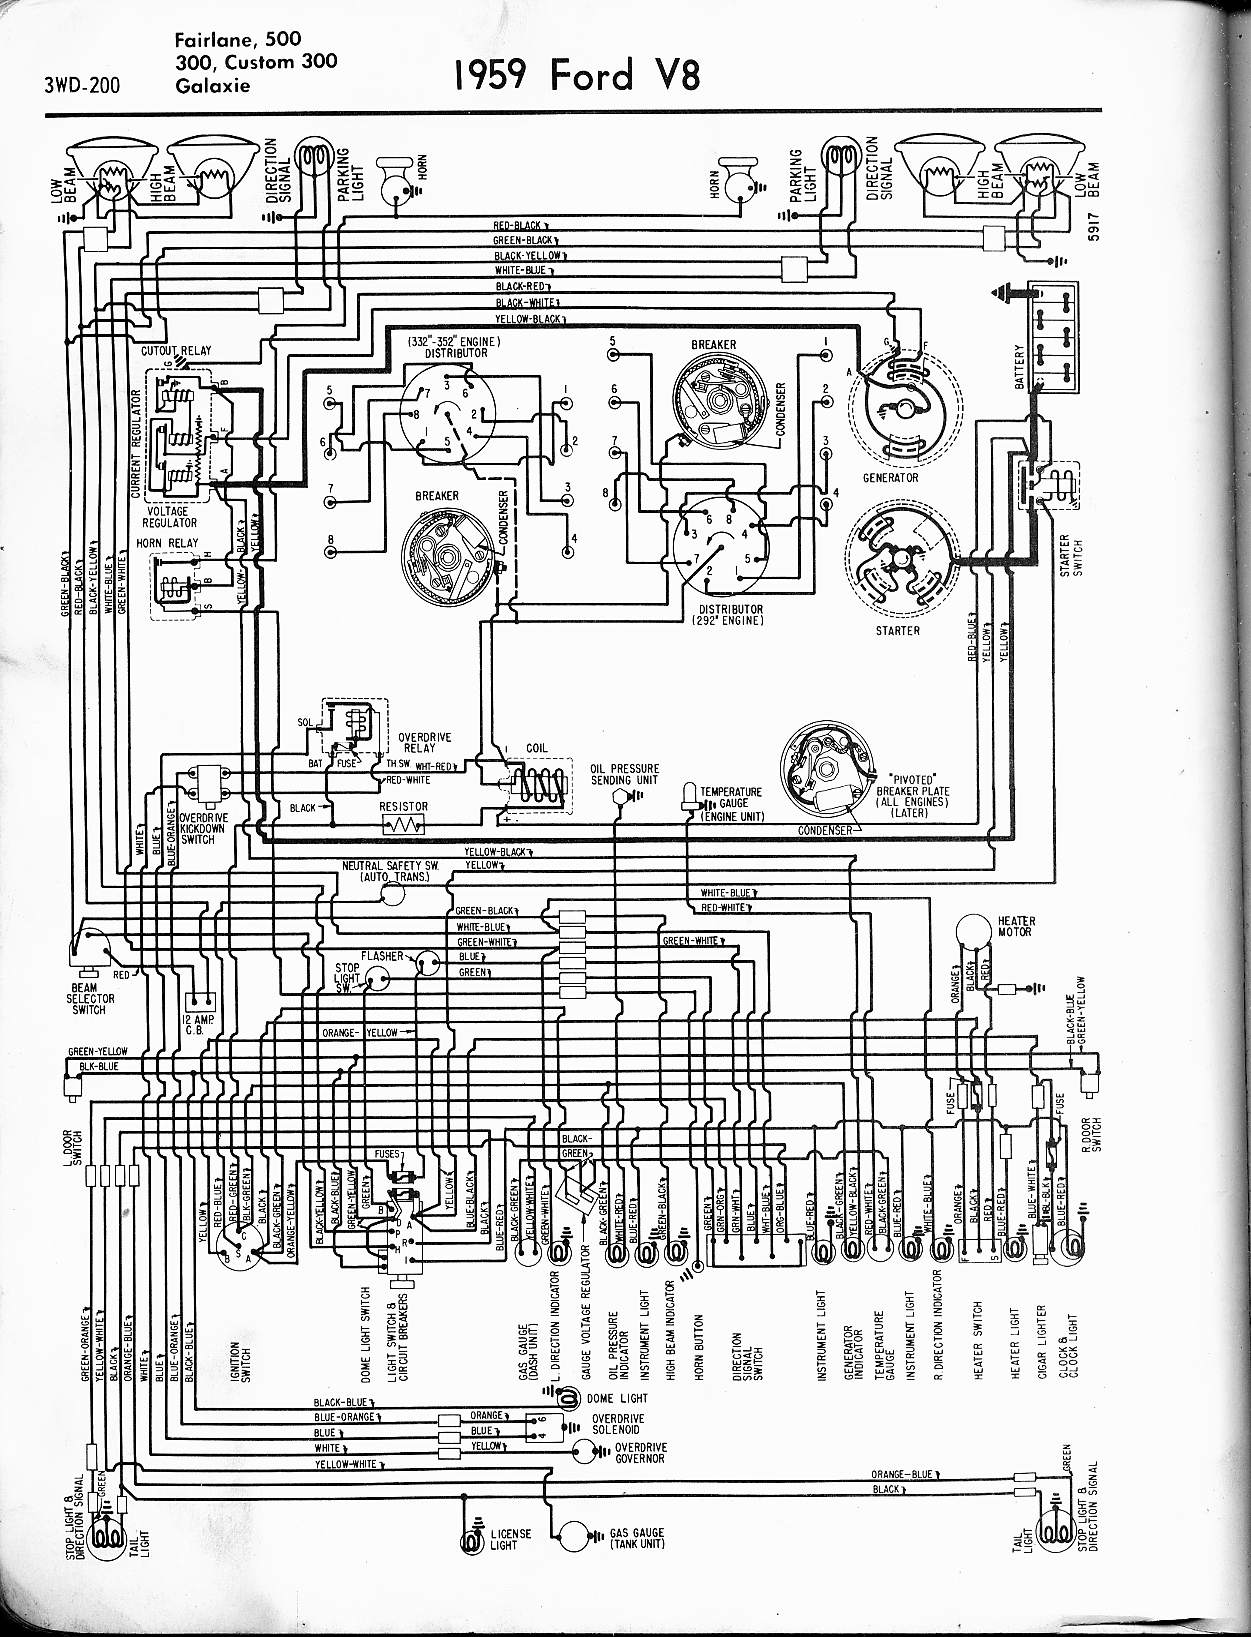 1957 Ford Ranchero Wiring Diagram Starting Know About International 7400 Air Tank Schematic 57 65 Diagrams Rh Oldcarmanualproject Com